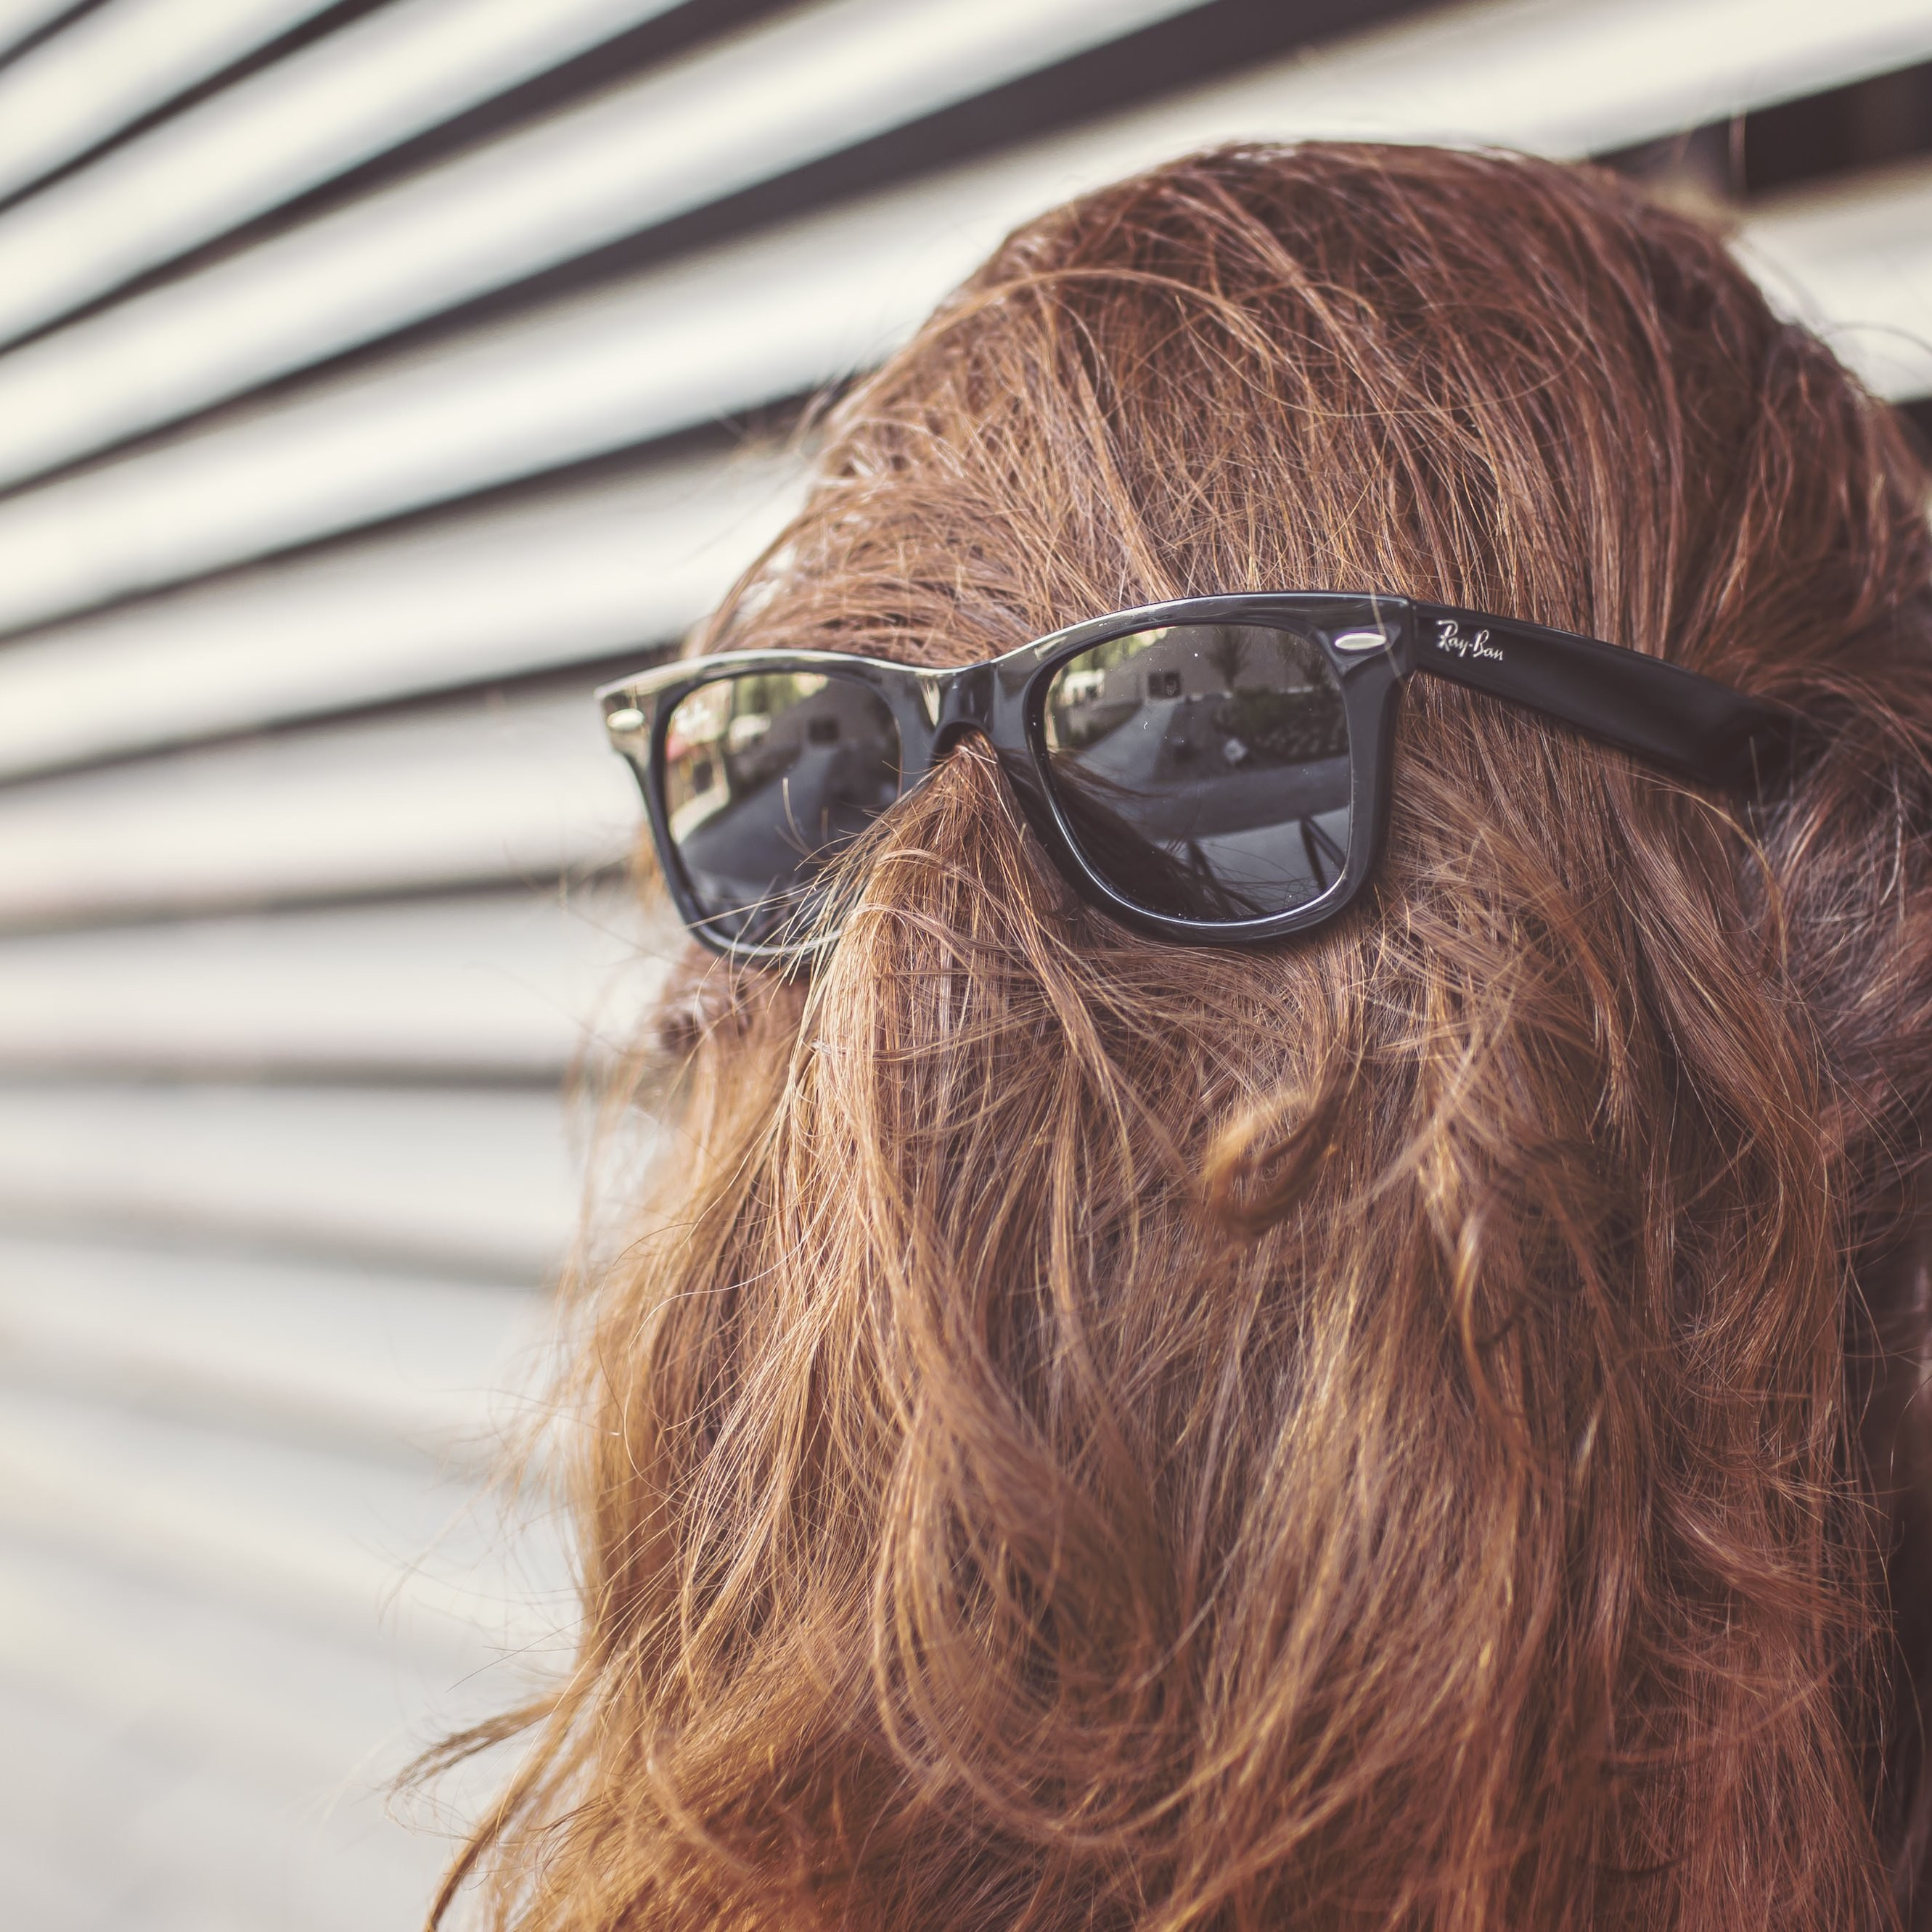 Chewbacca Girl Wallpaper for Apple iPhone 6 Plus